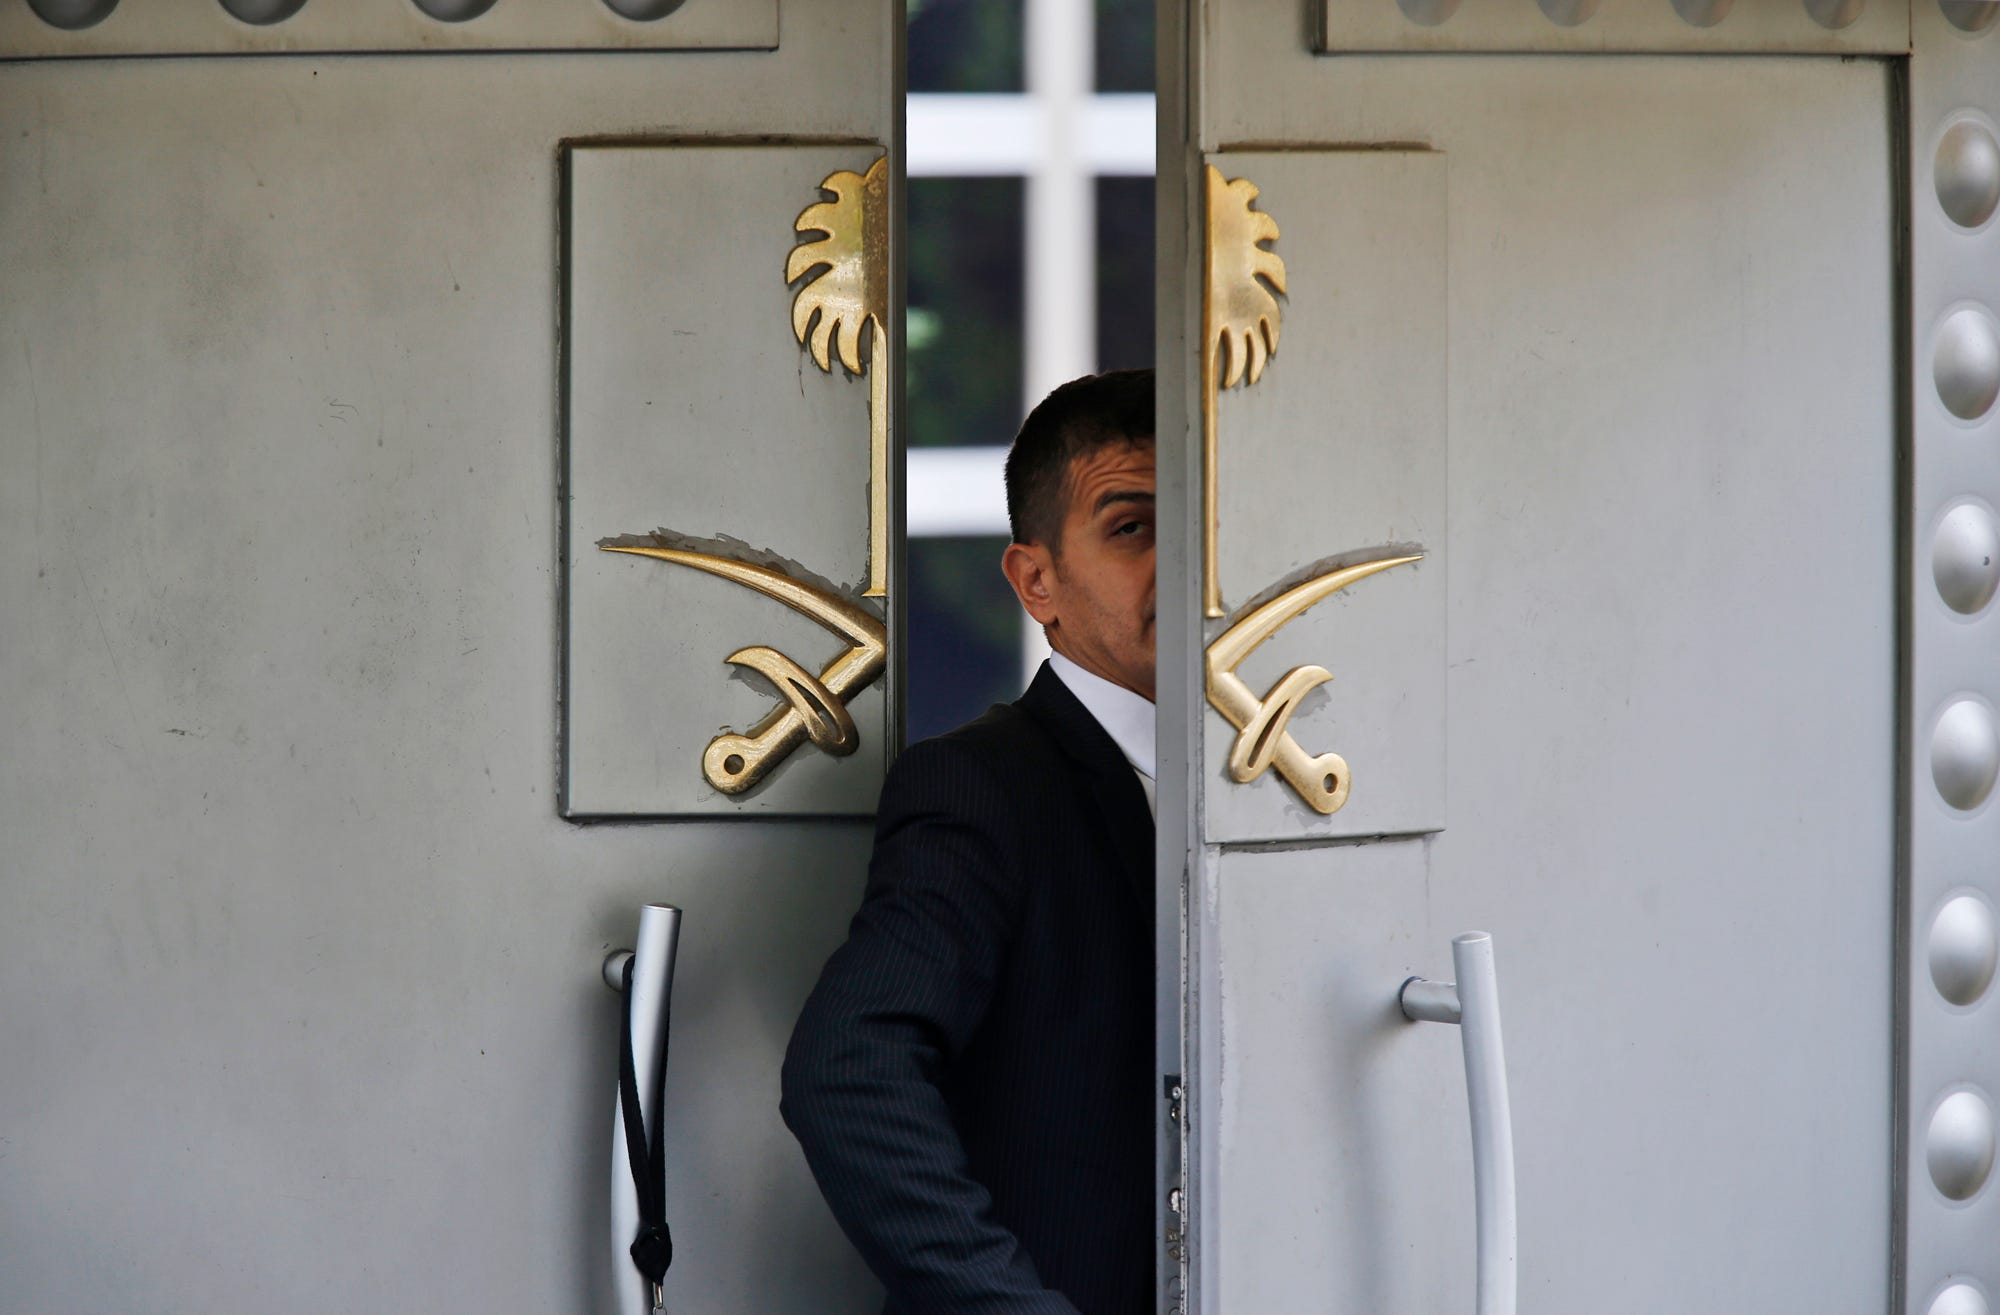 A security guard walks in the Saudi Arabia consulate in Istanbul, Tuesday, Oct. 9, 2018. Turkey said Tuesday it will search the Saudi Consulate in Istanbul as part of an investigation into the disappearance of Jamal Khashoggi, a missing Saudi contributor to The Washington Post, a week after he vanished during a visit there. (AP Photo/Lefteris Pitarakis)